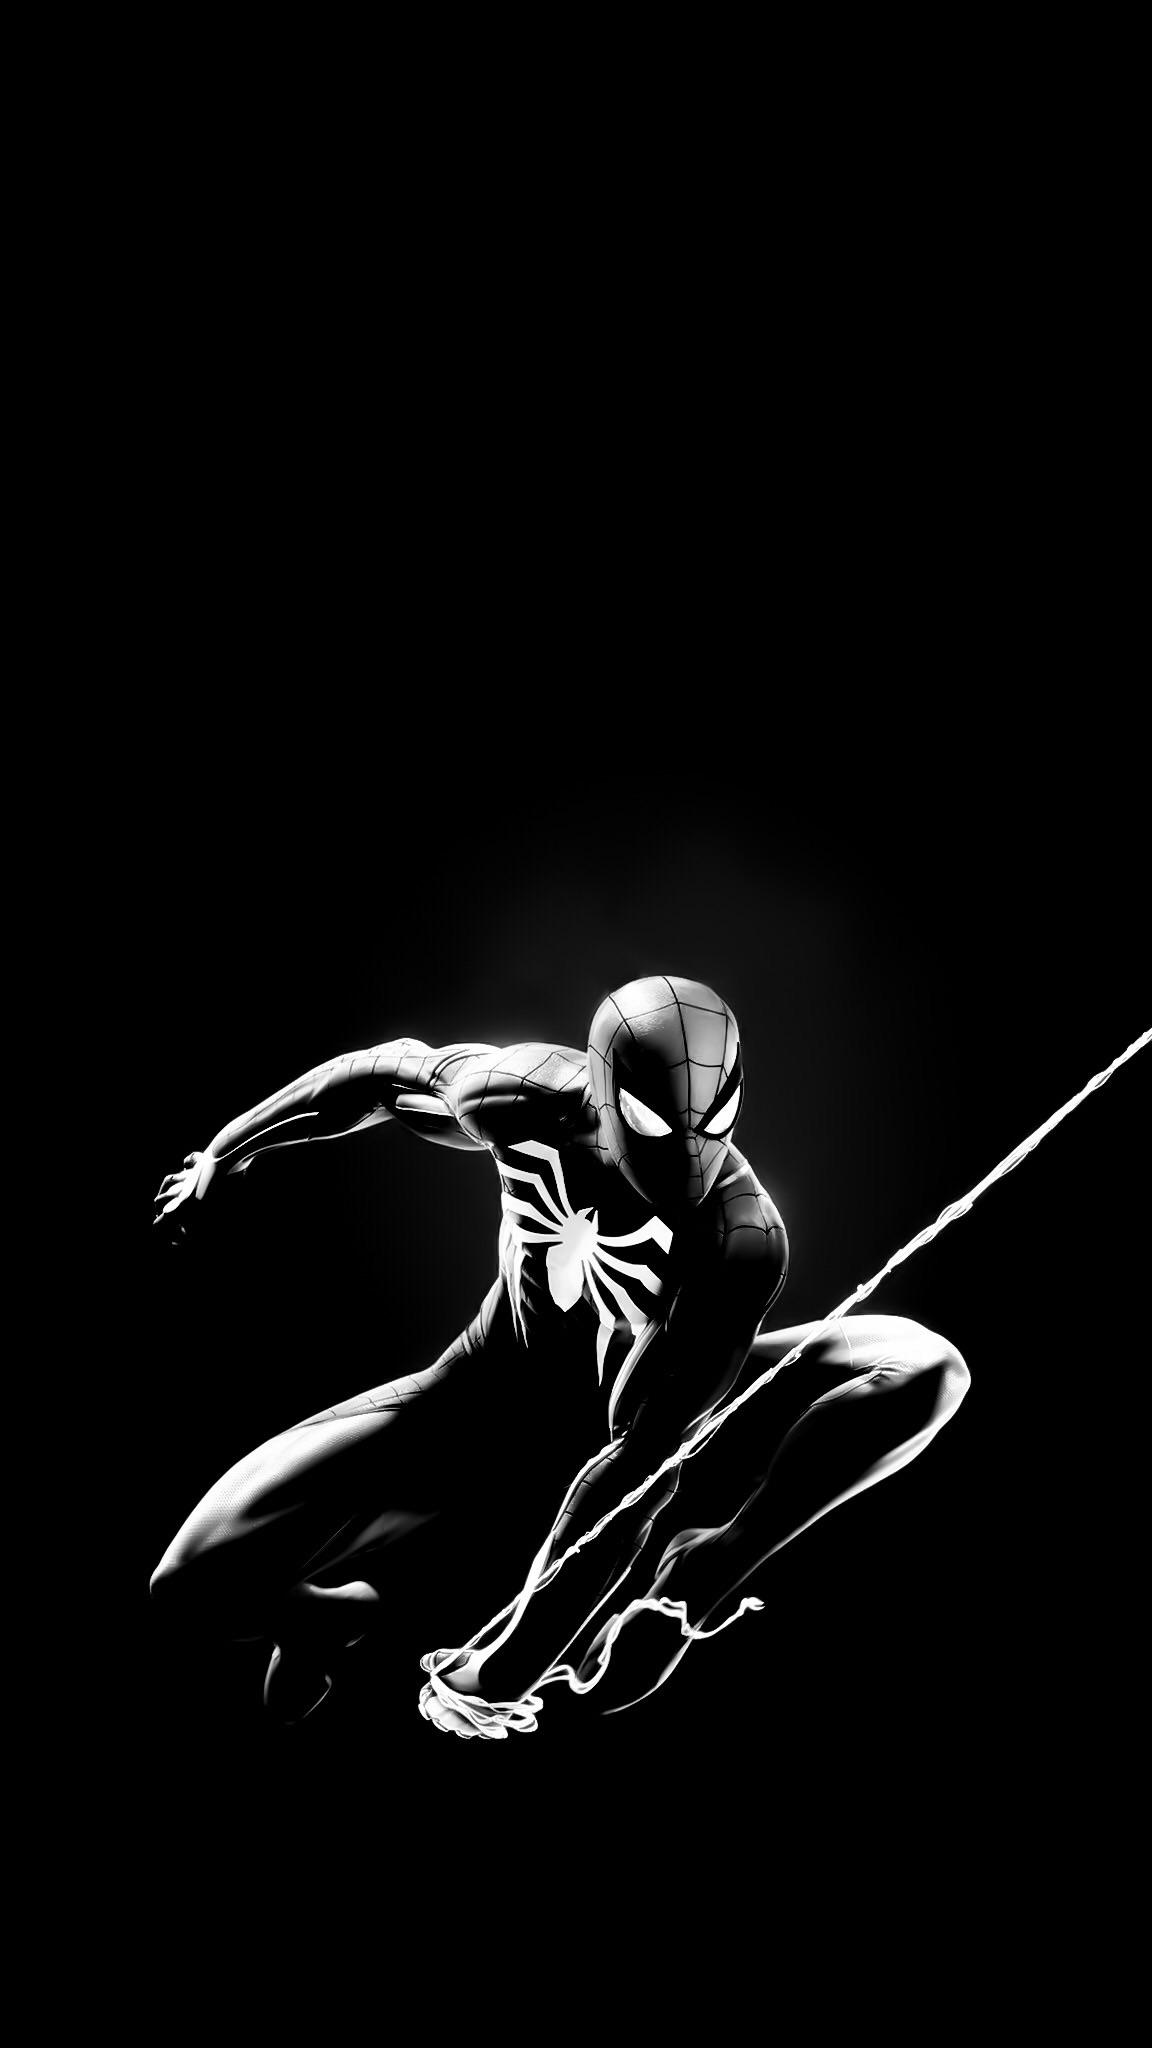 1152x2048 Spider-Man Wallpaper I made for my phone : SpidermanPS4